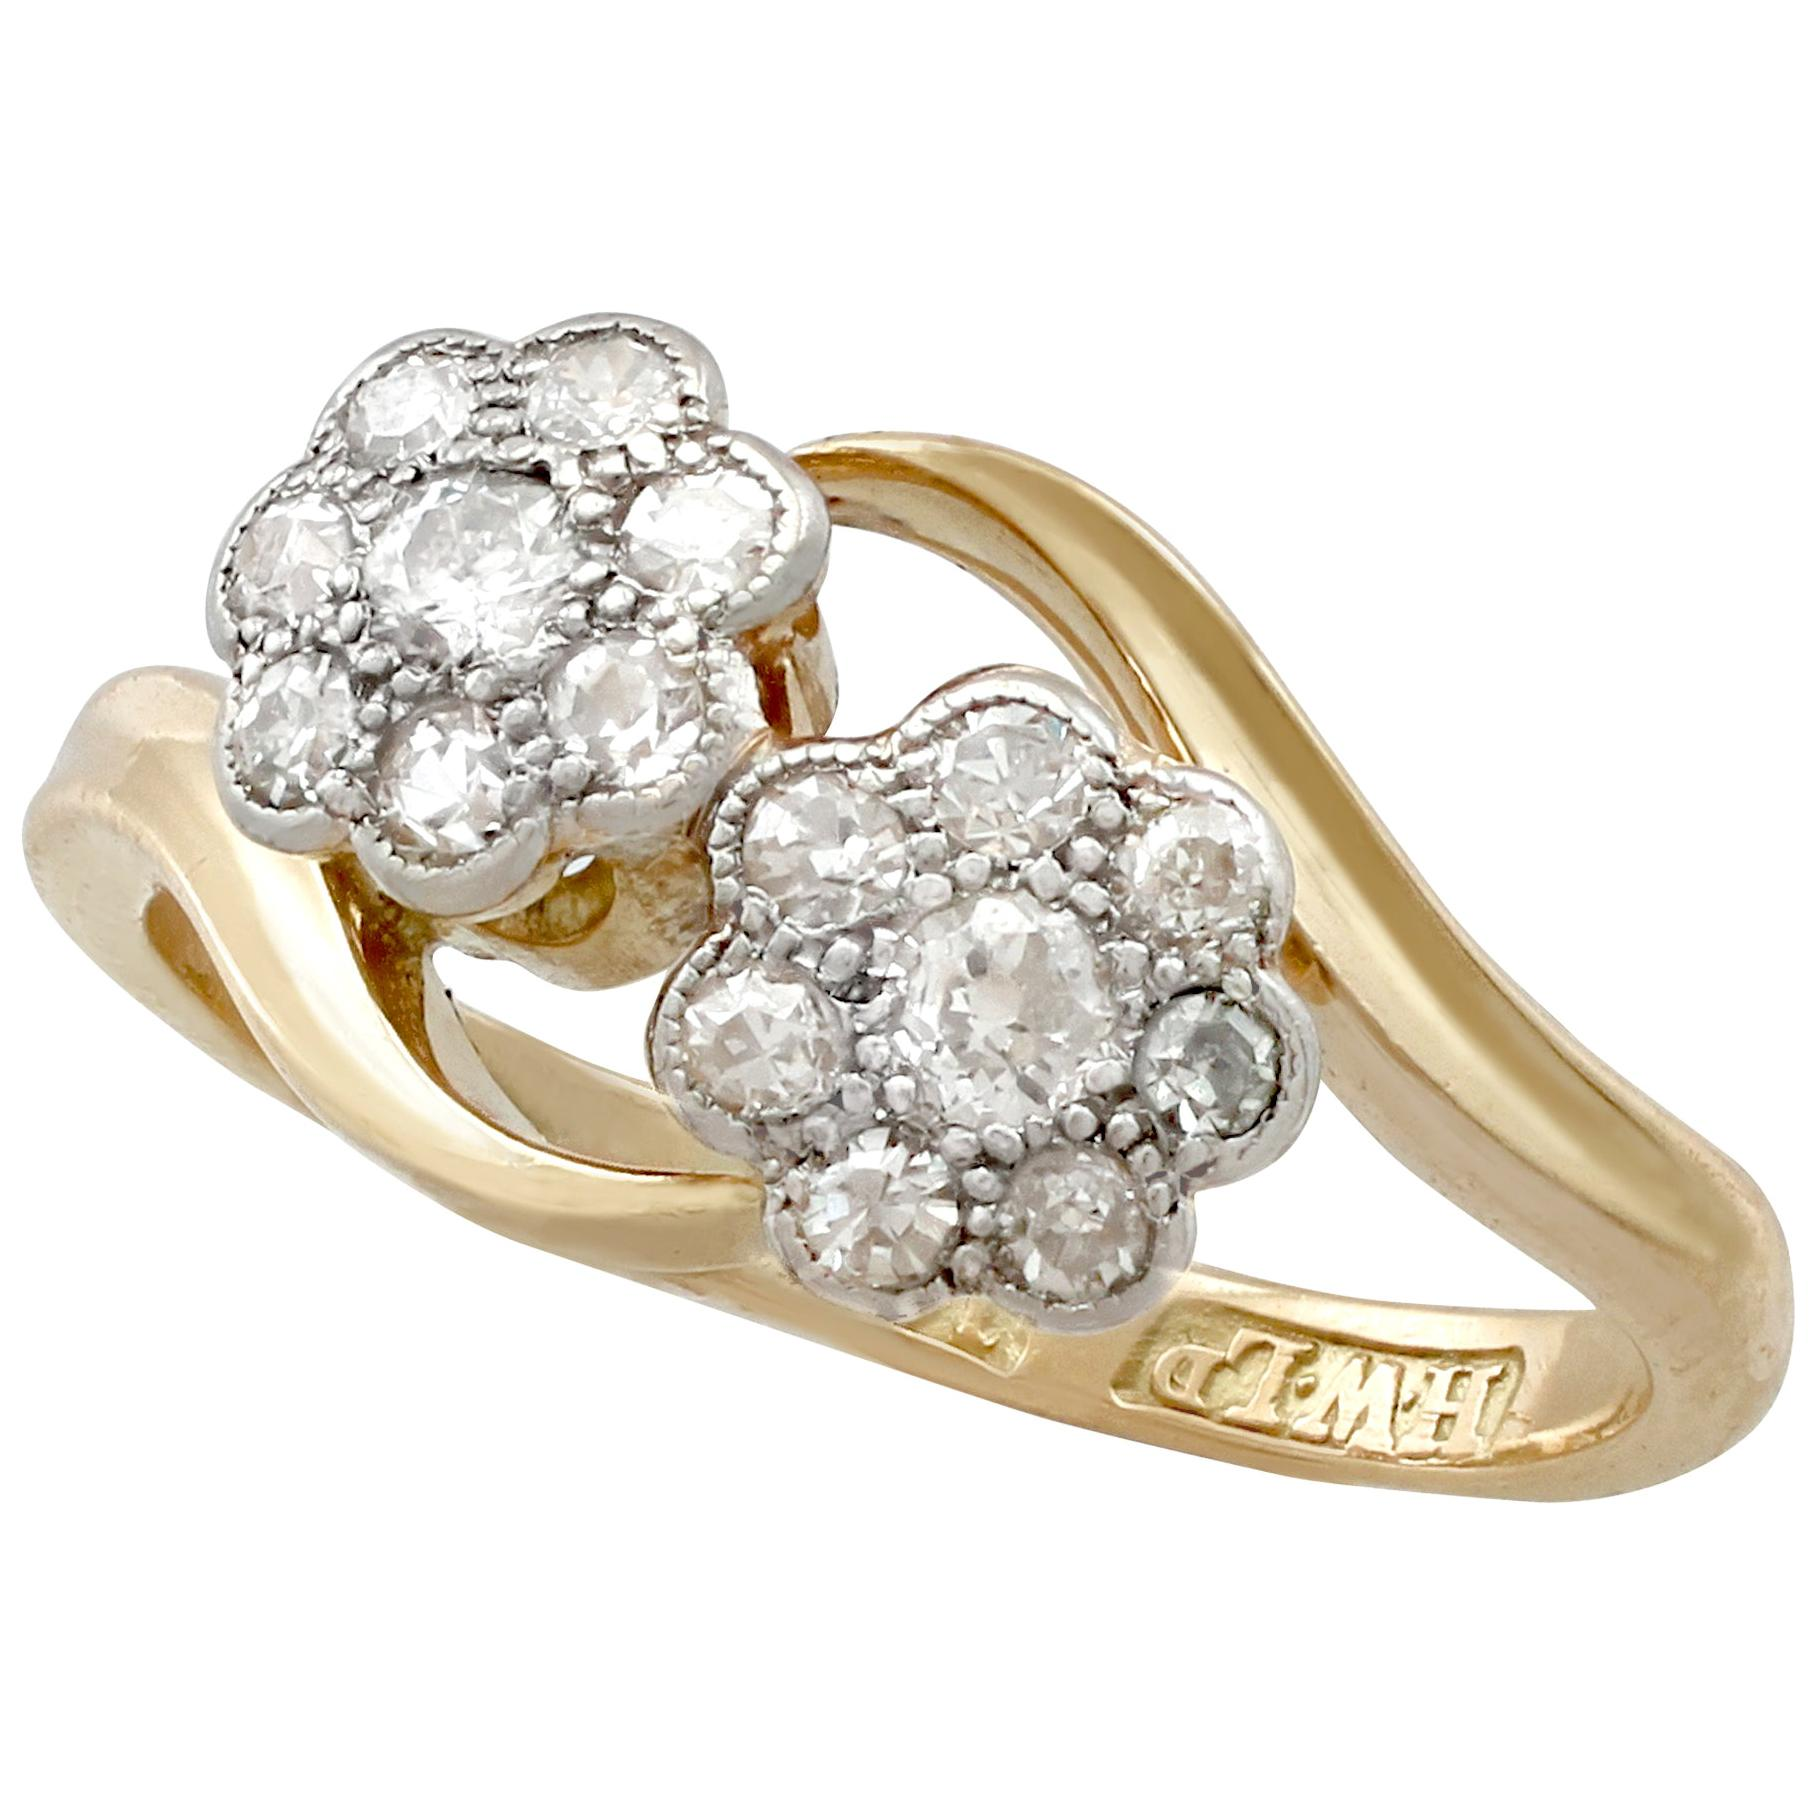 1910s Antique Diamond and Yellow Gold Twist Ring